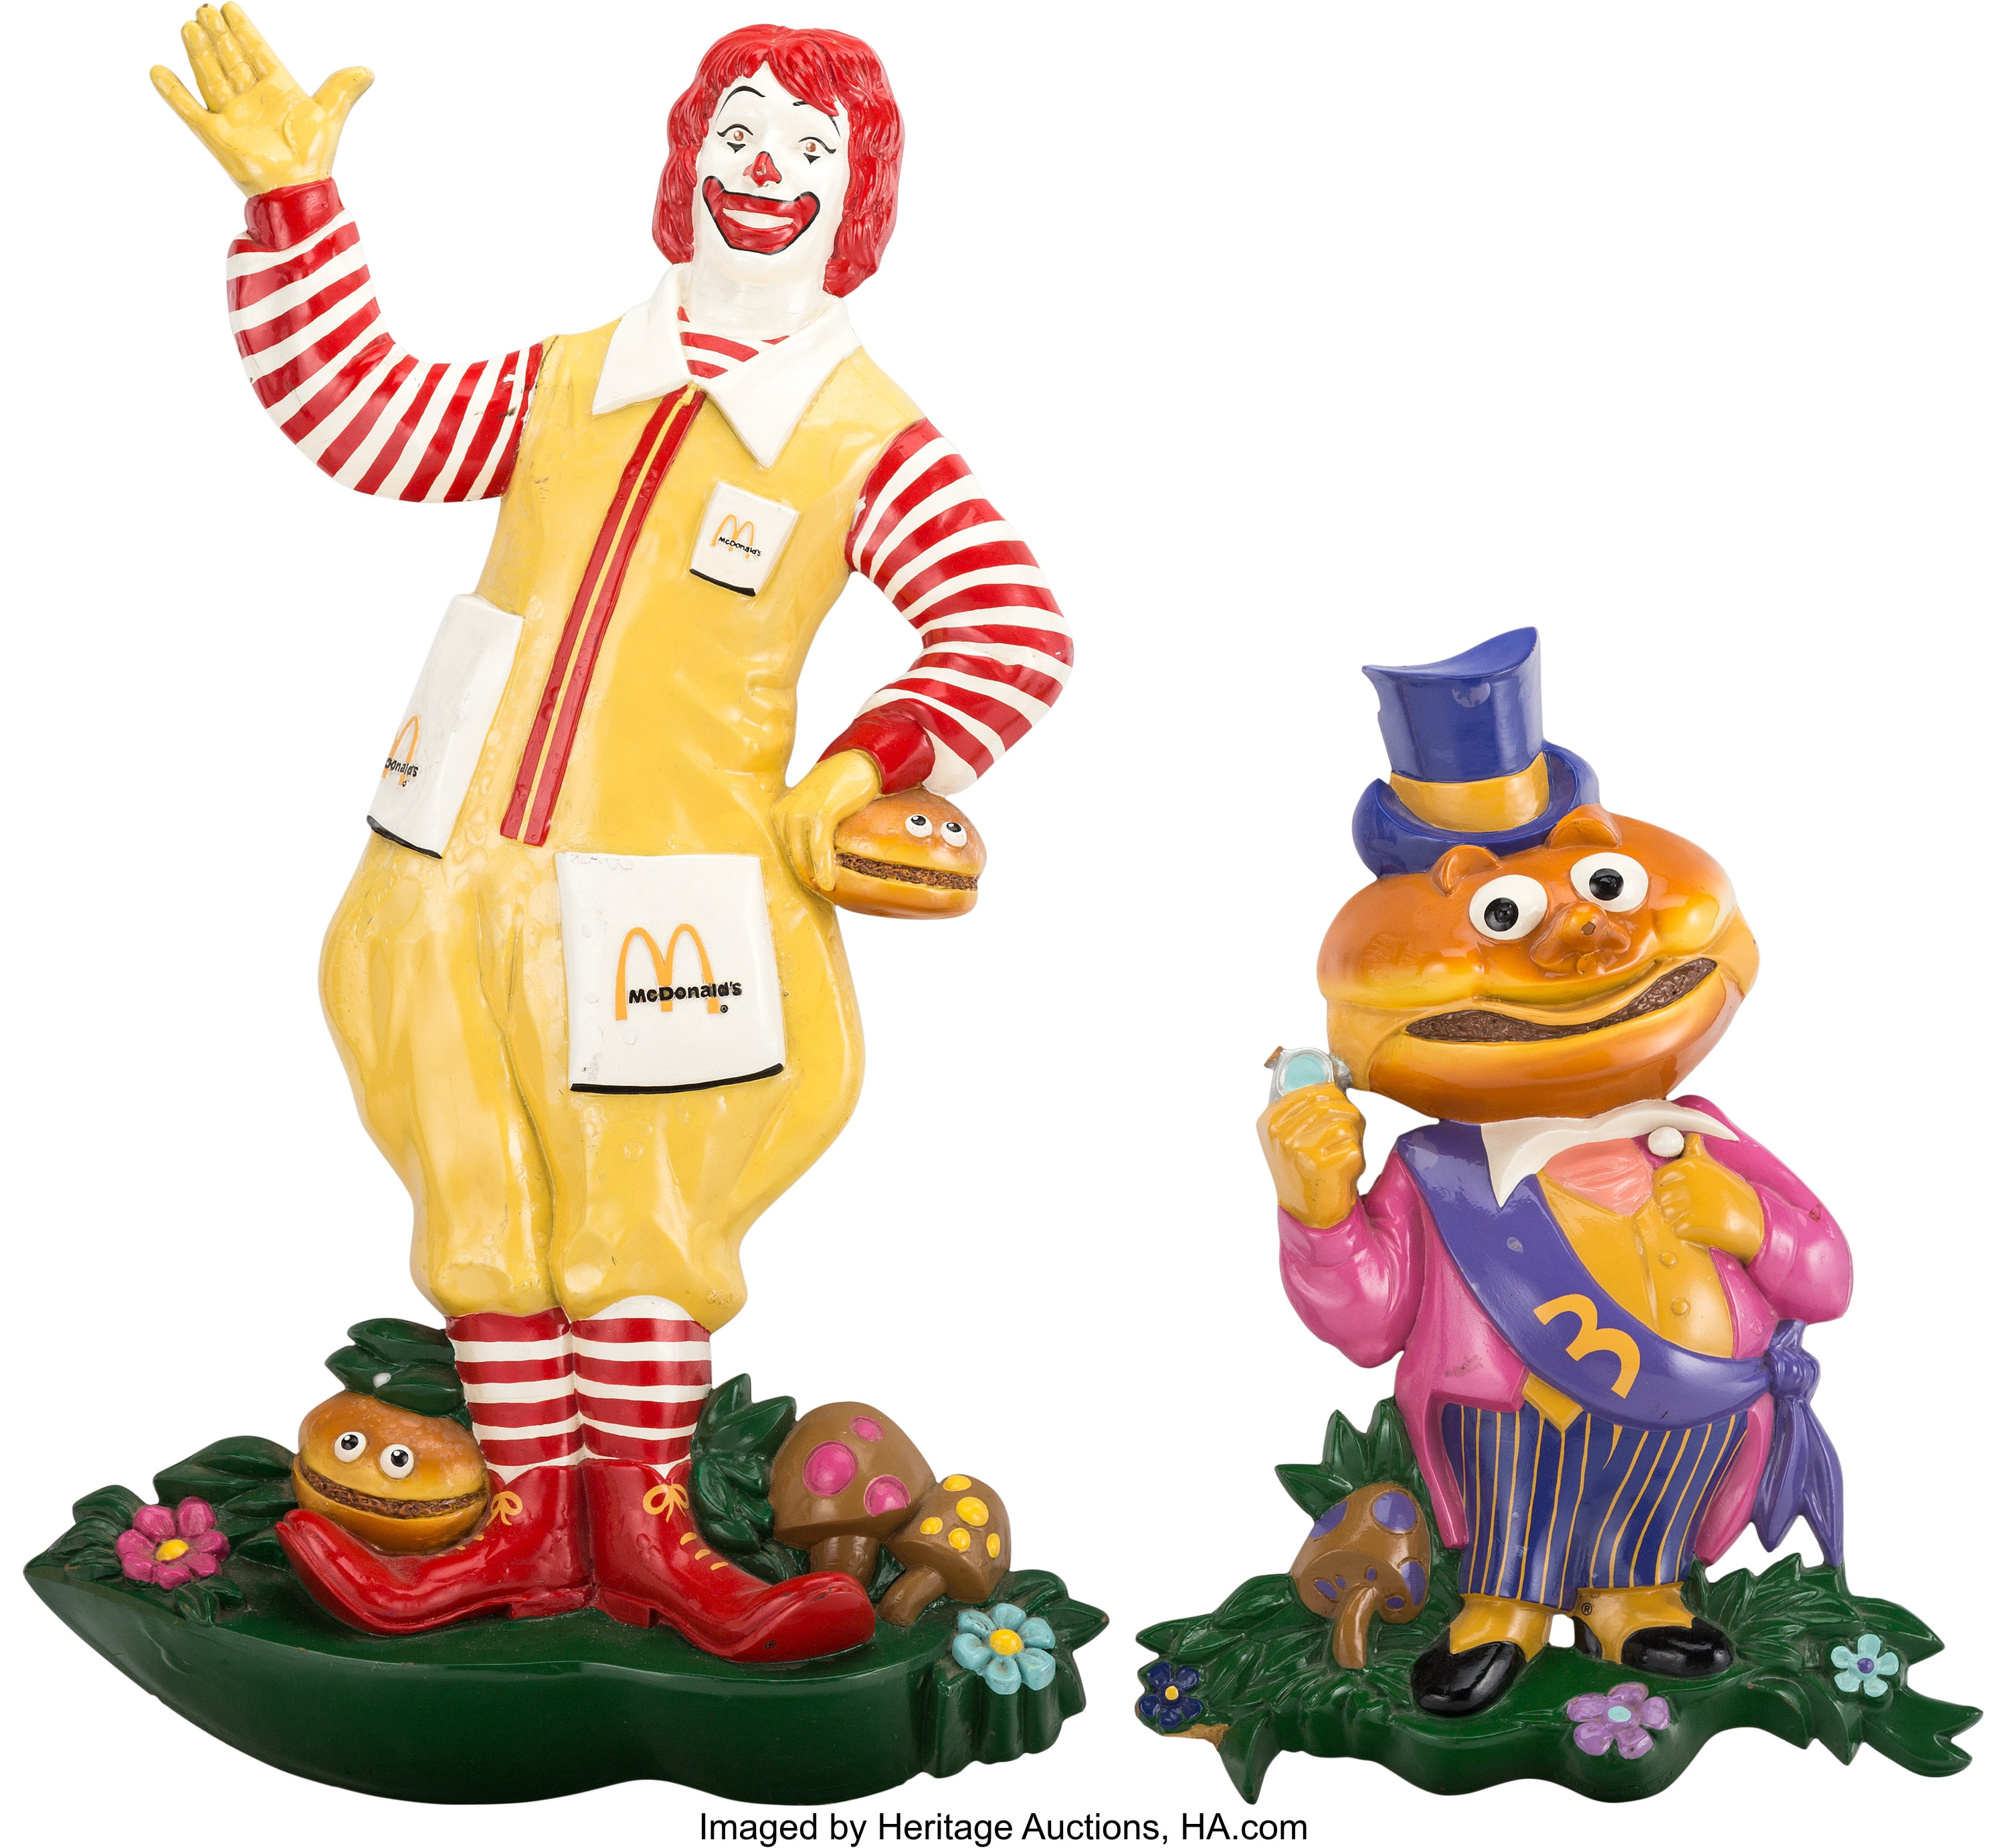 Mcdonald S Ronald Mcdonald And Mayor Mccheese Wall Plaques Lot 98108 Heritage Auctions Search, discover and share your favorite mayor mccheese gifs. https comics ha com itm memorabilia mcdonald s ronald mcdonald and mayor mccheese wall plaques 1975 total 2 items a 7232 98108 s ic4 otherresults sampleitem thumbnail 022817 tab archivesearchresults 012417